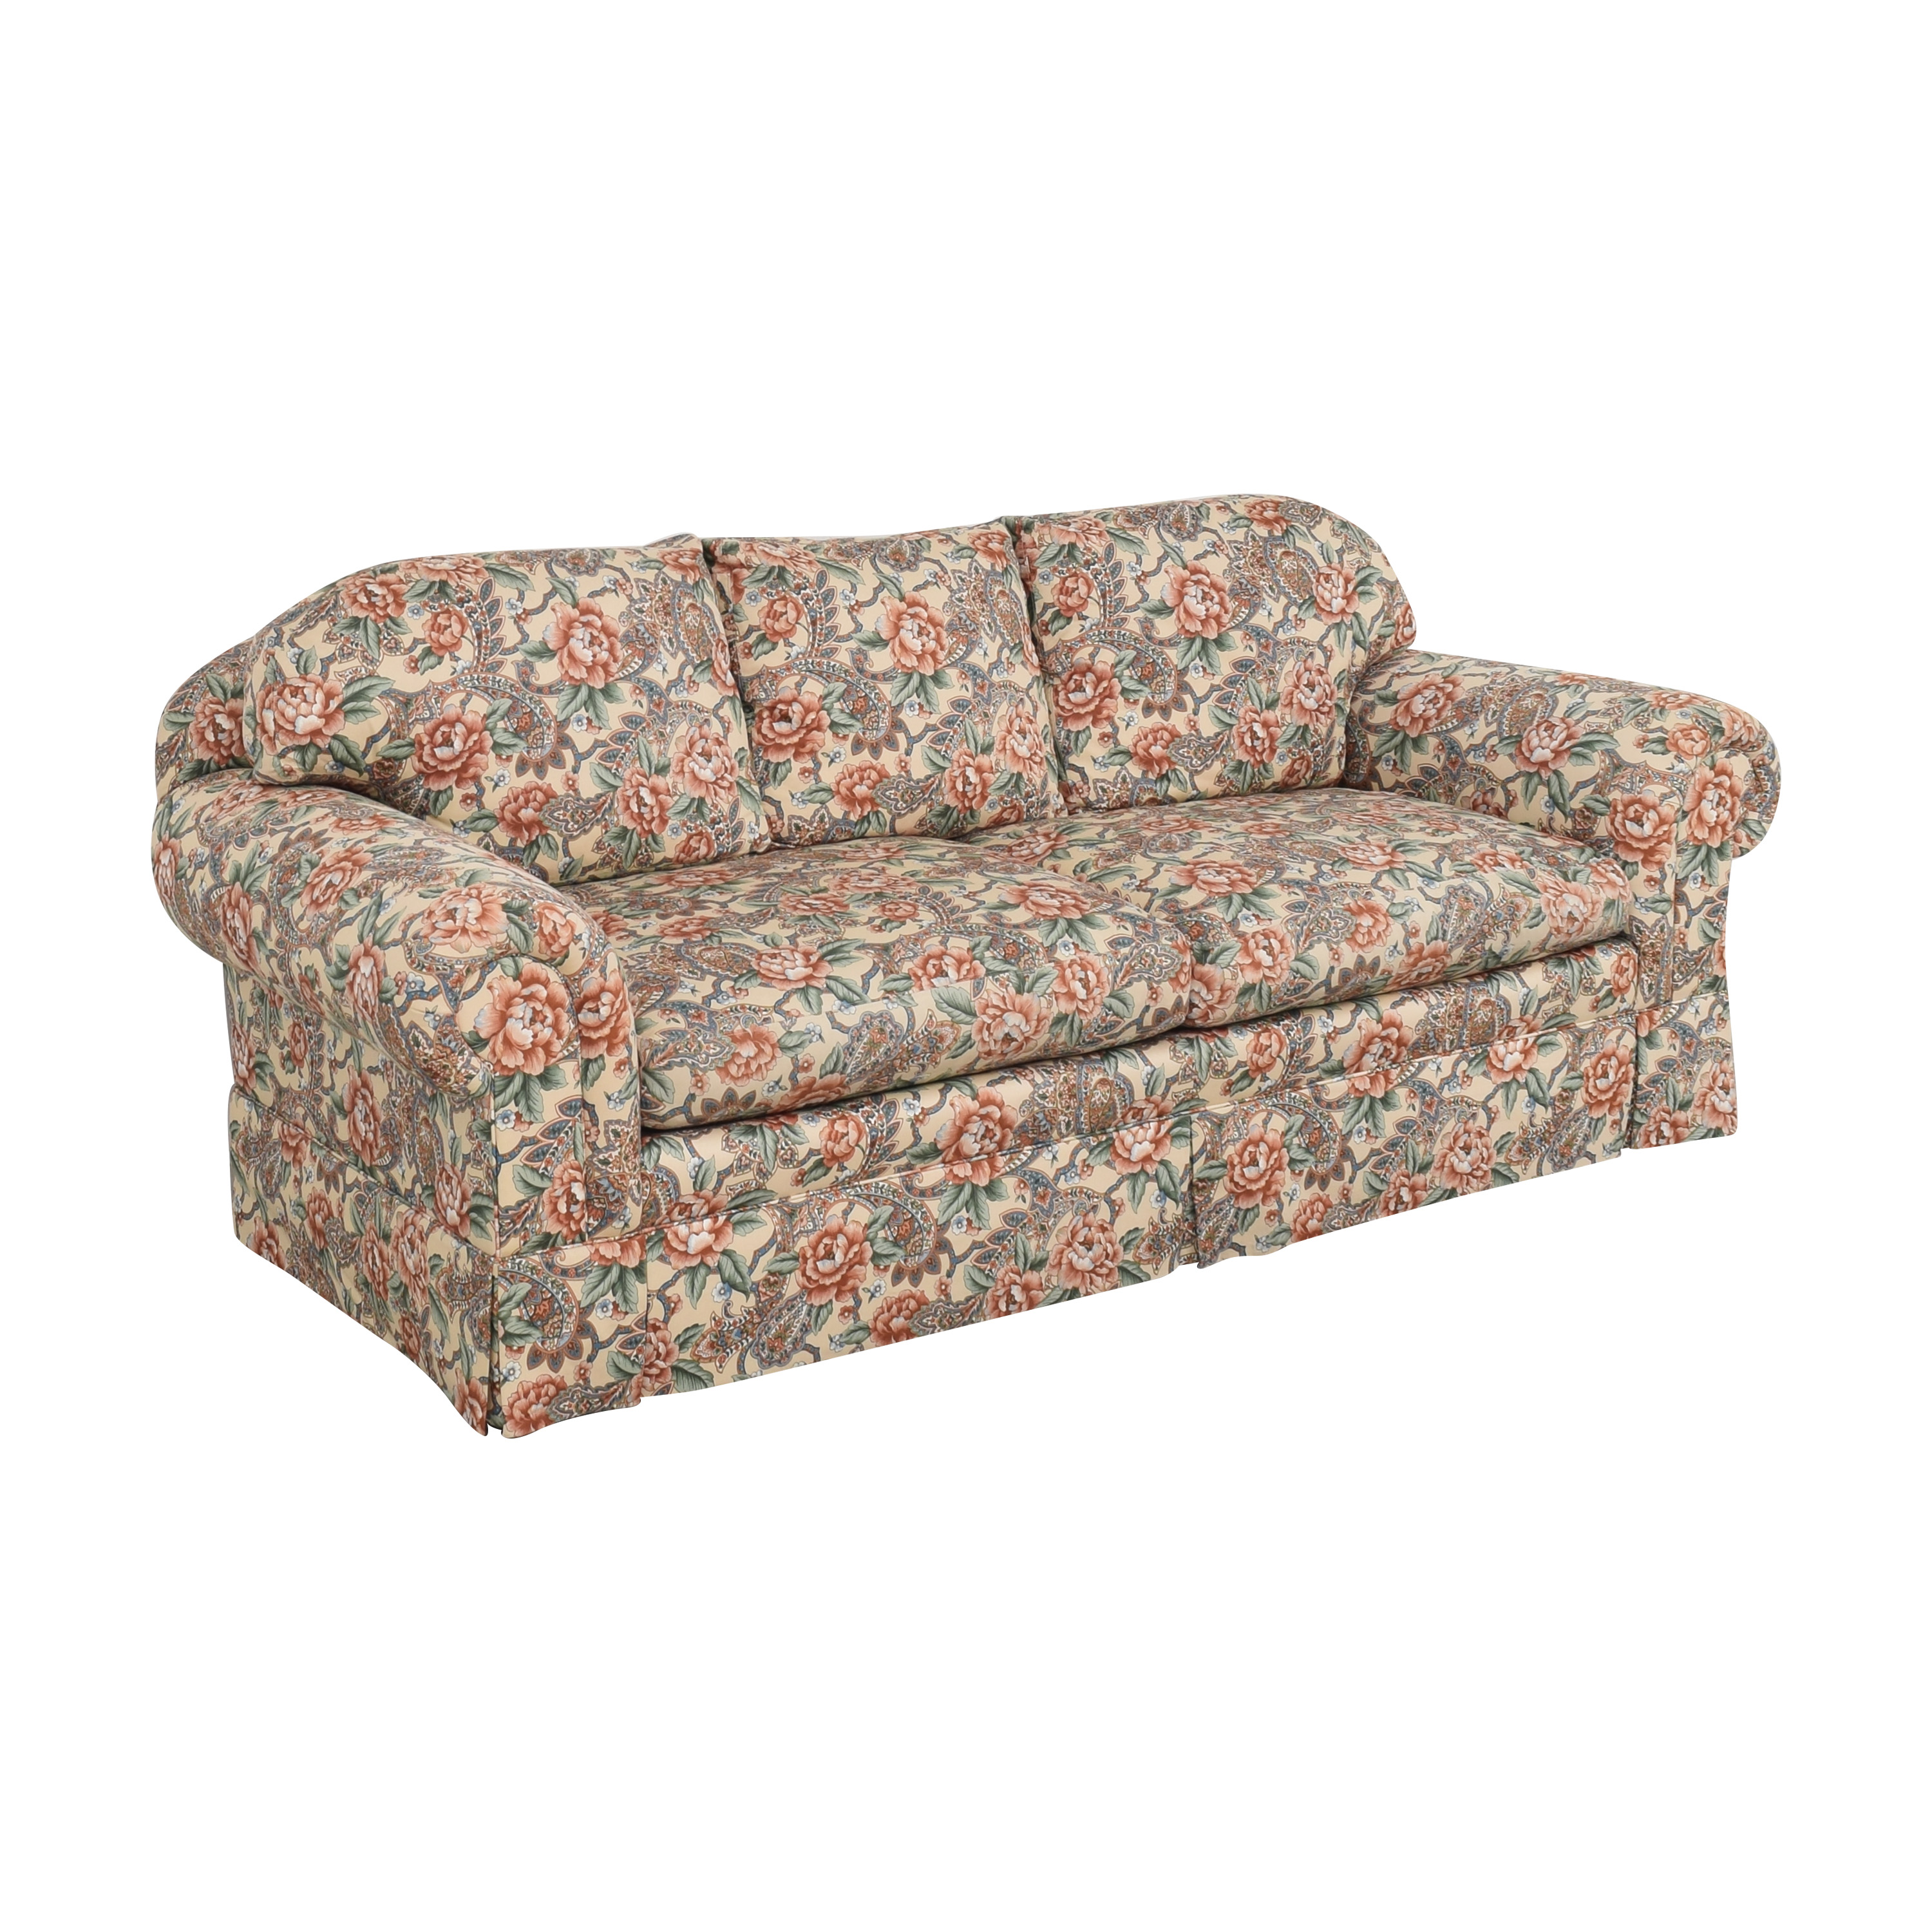 EJ Victor EJ Victor Floral and Paisley Skirted Sofa on sale